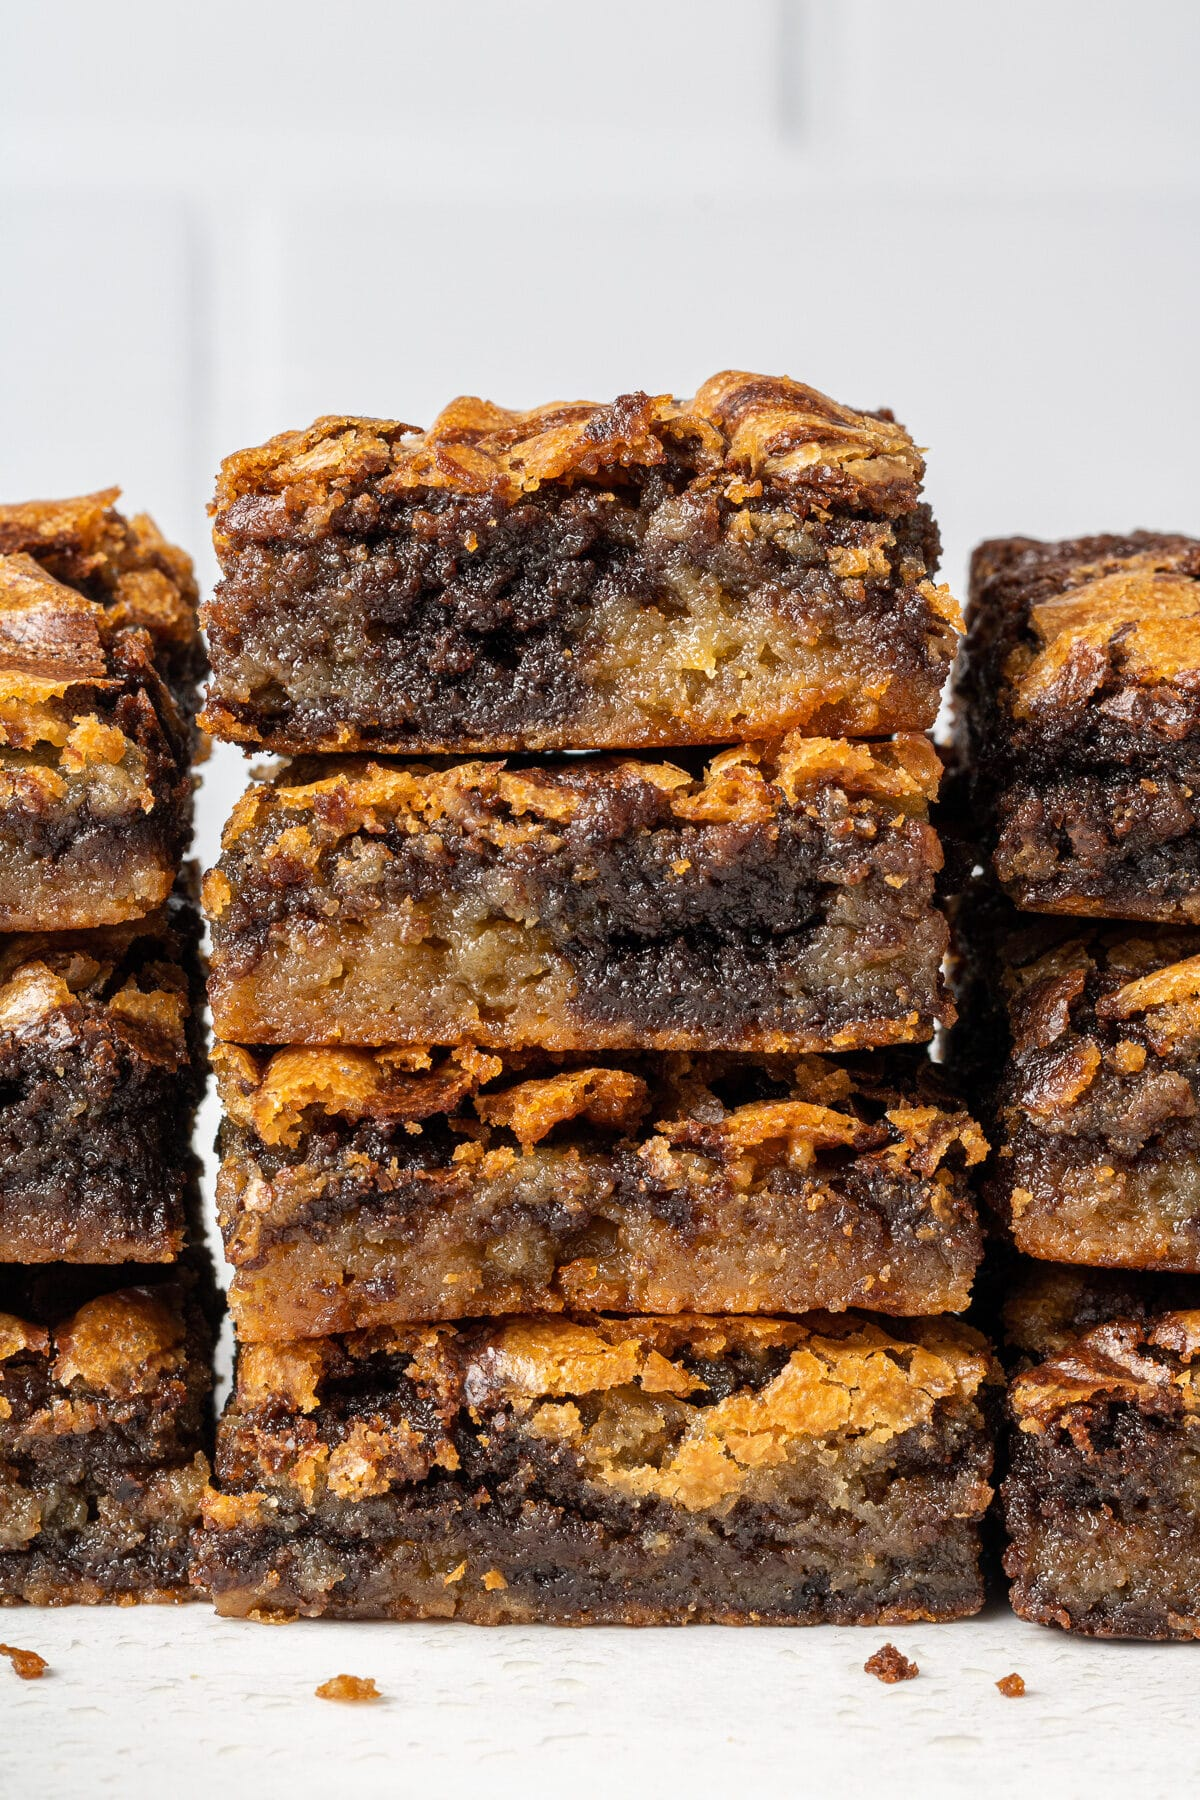 brownie blondies stacked on top of each other with crumbs in front